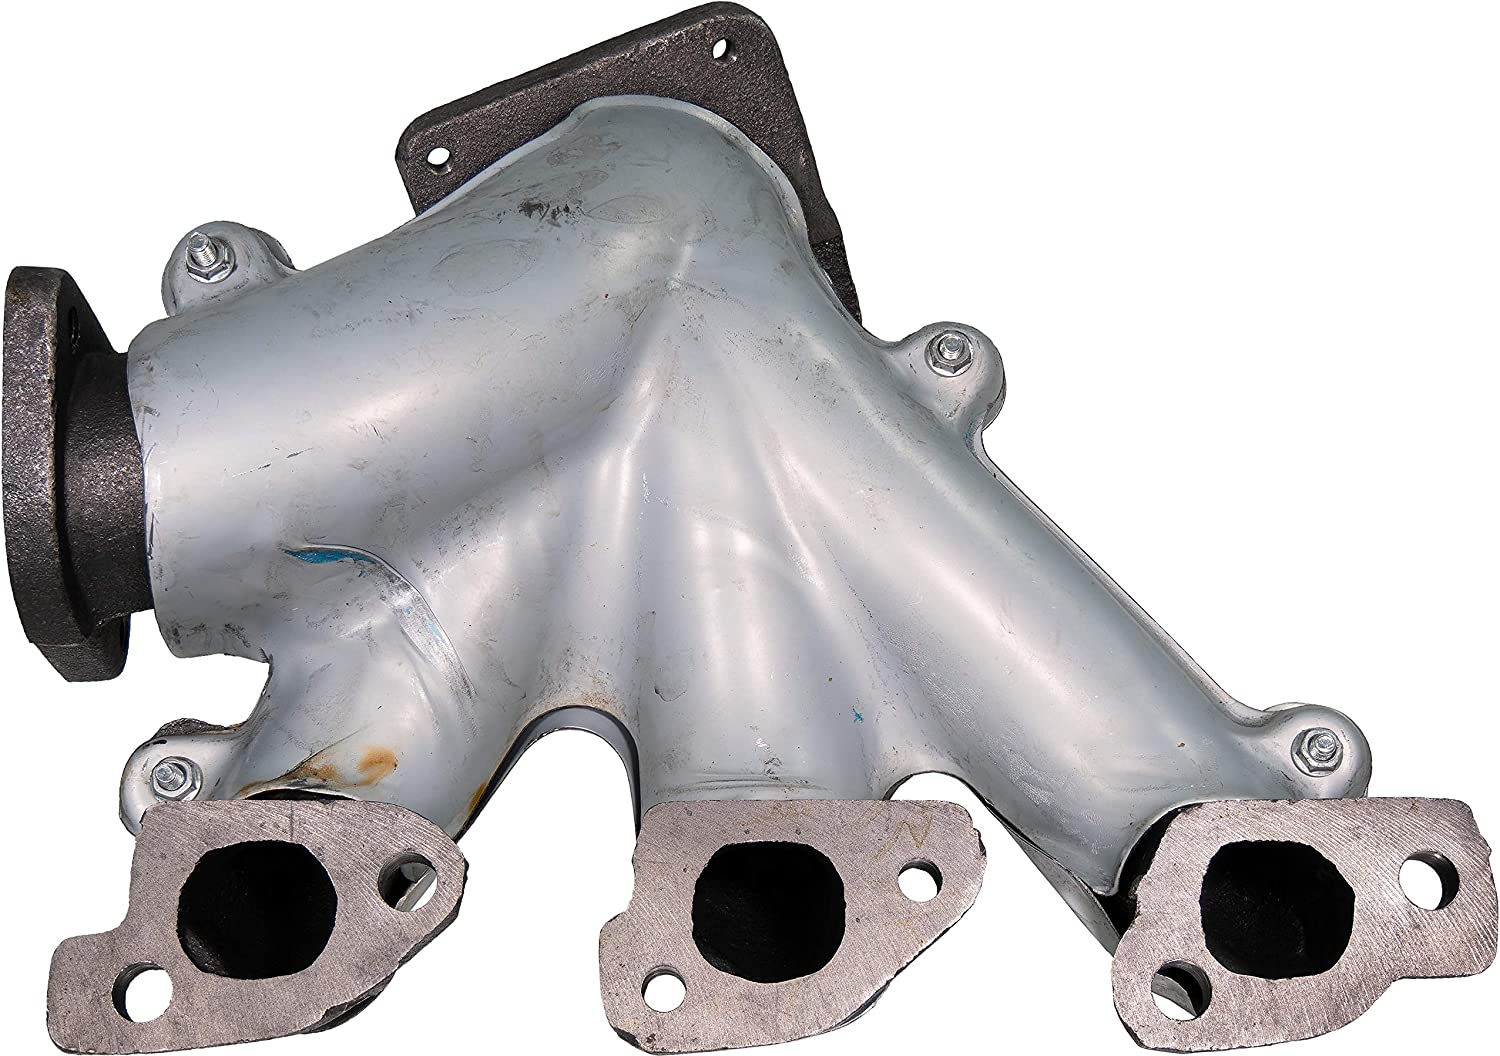 APDTY 133951 Exhaust Manifold Cast Iron Assembly Fits Rear Of Engine Bay on 3.3L or 3.8L V6 2008-2010 Dodge Grand Caravan or Chrysler Town /& Country Replaces Mopar 4666084AC, 04666084AC